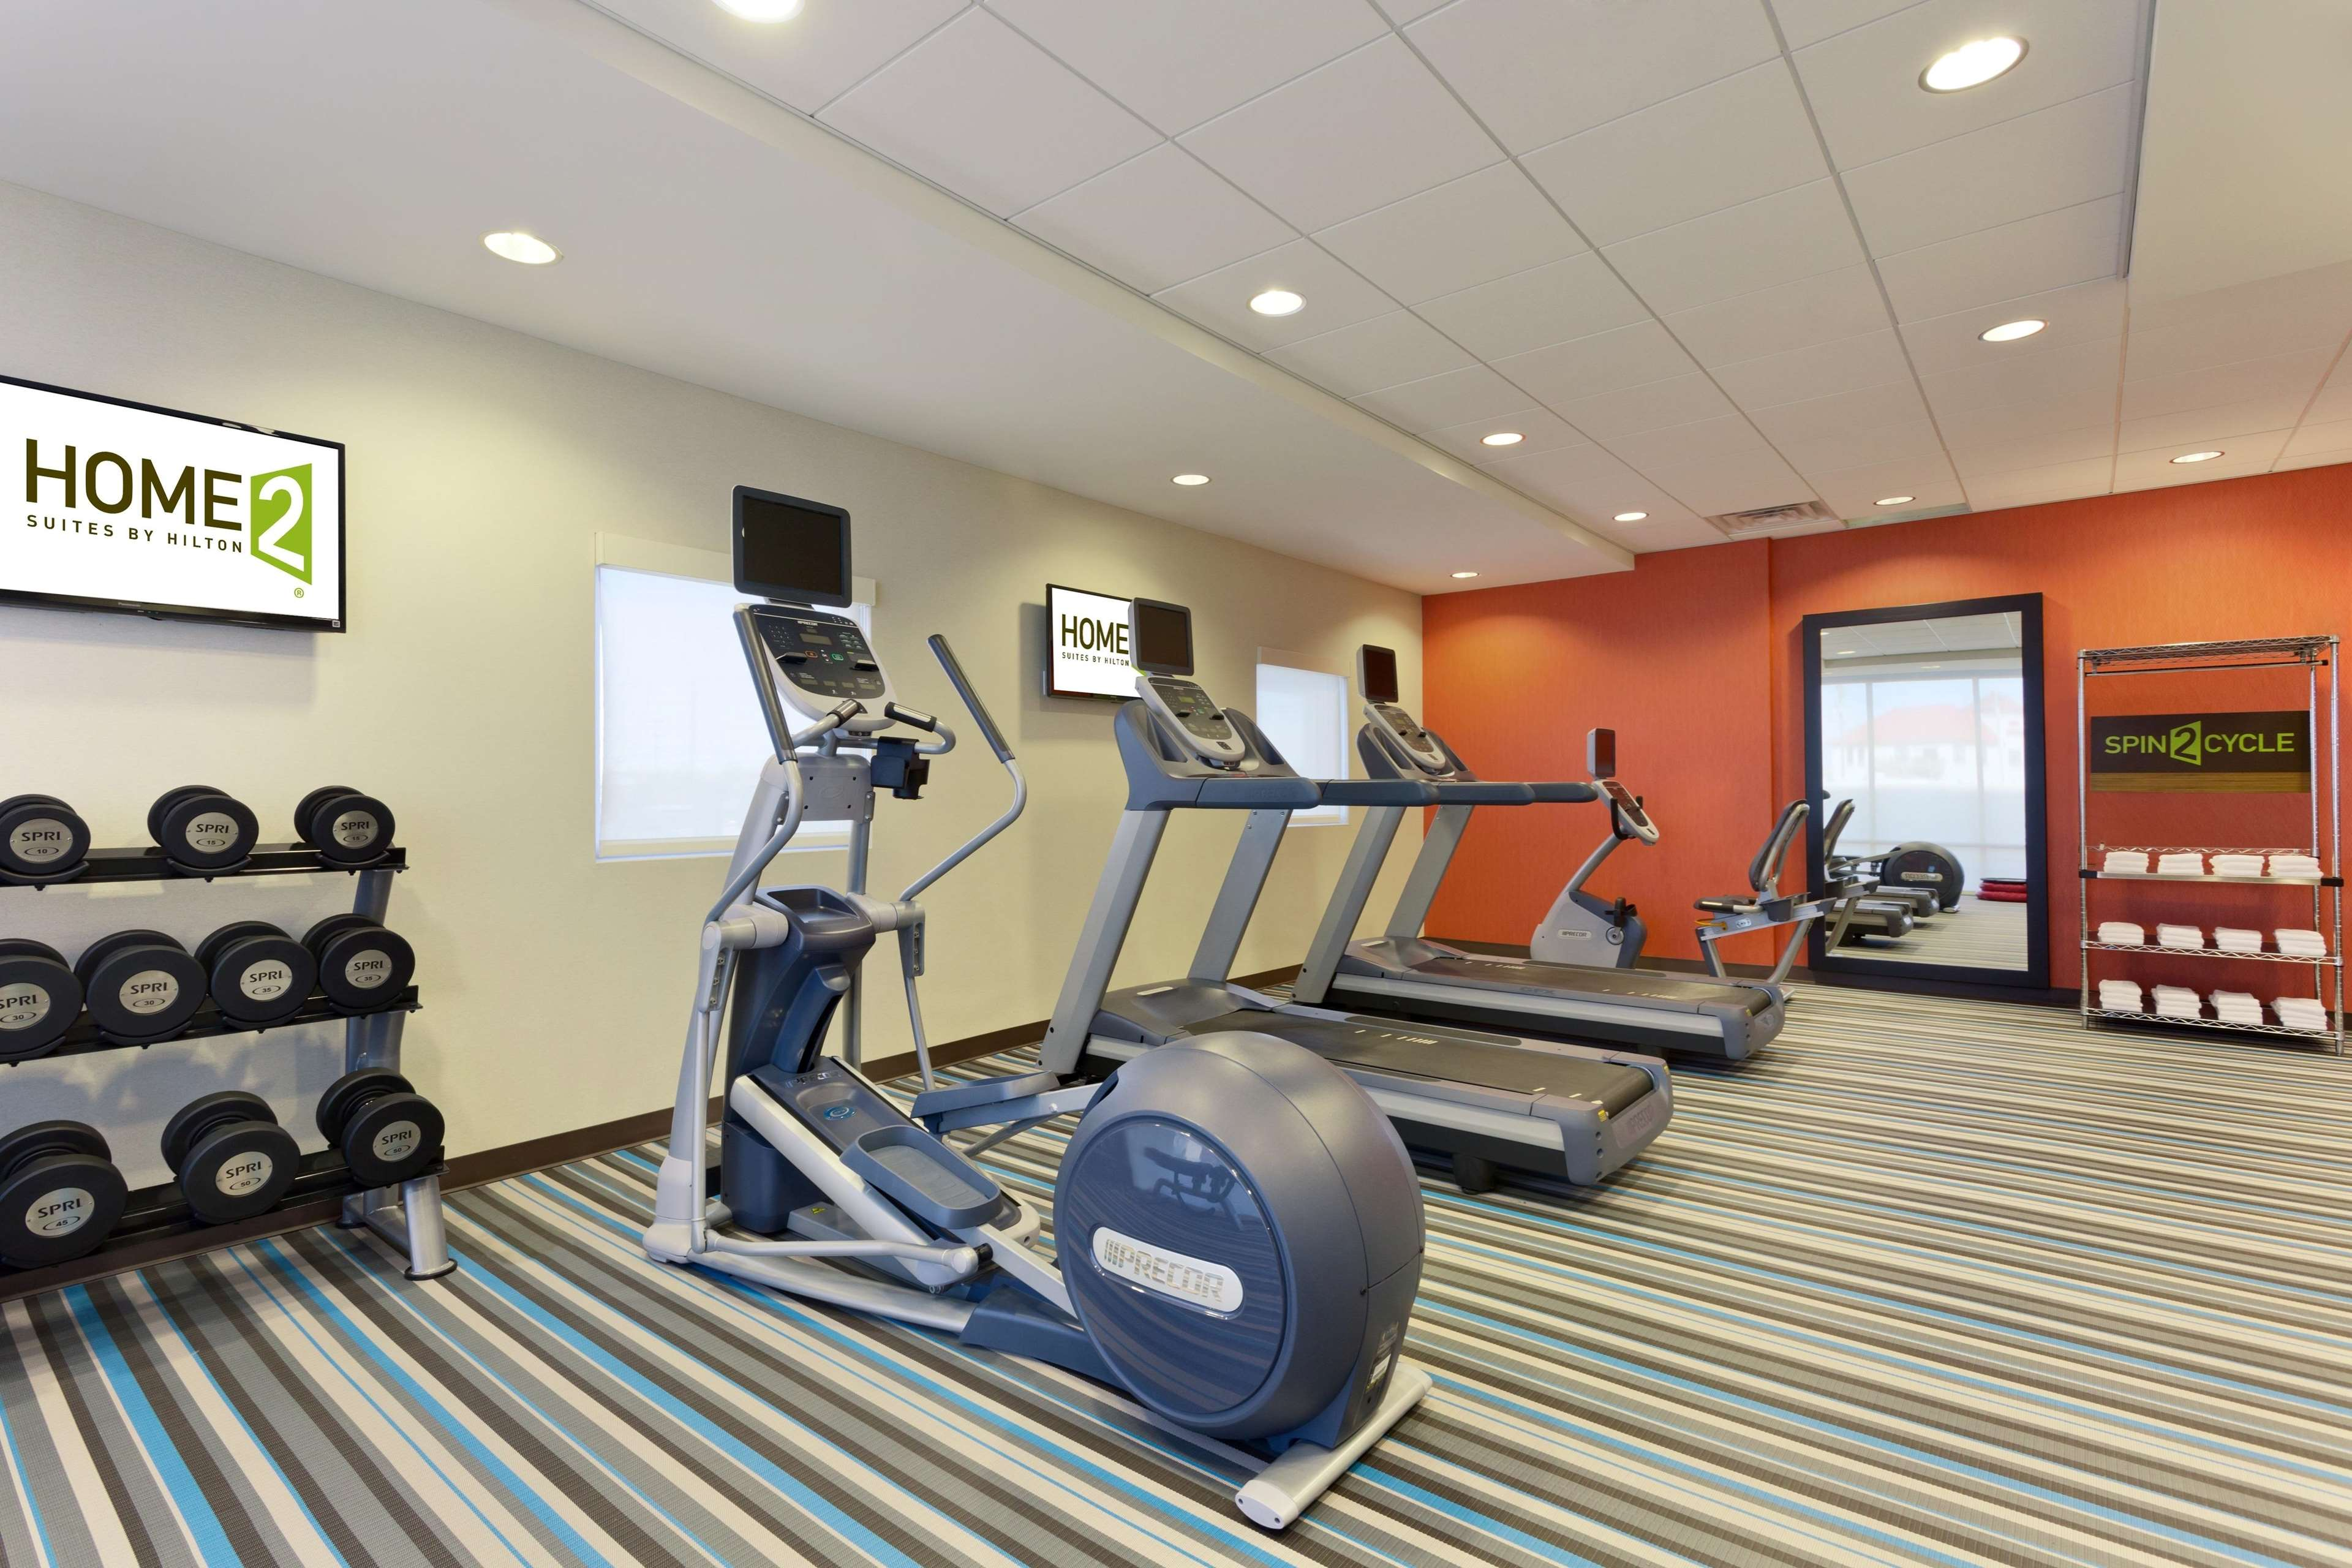 Home2 Suites by Hilton Baltimore / Aberdeen, MD image 4